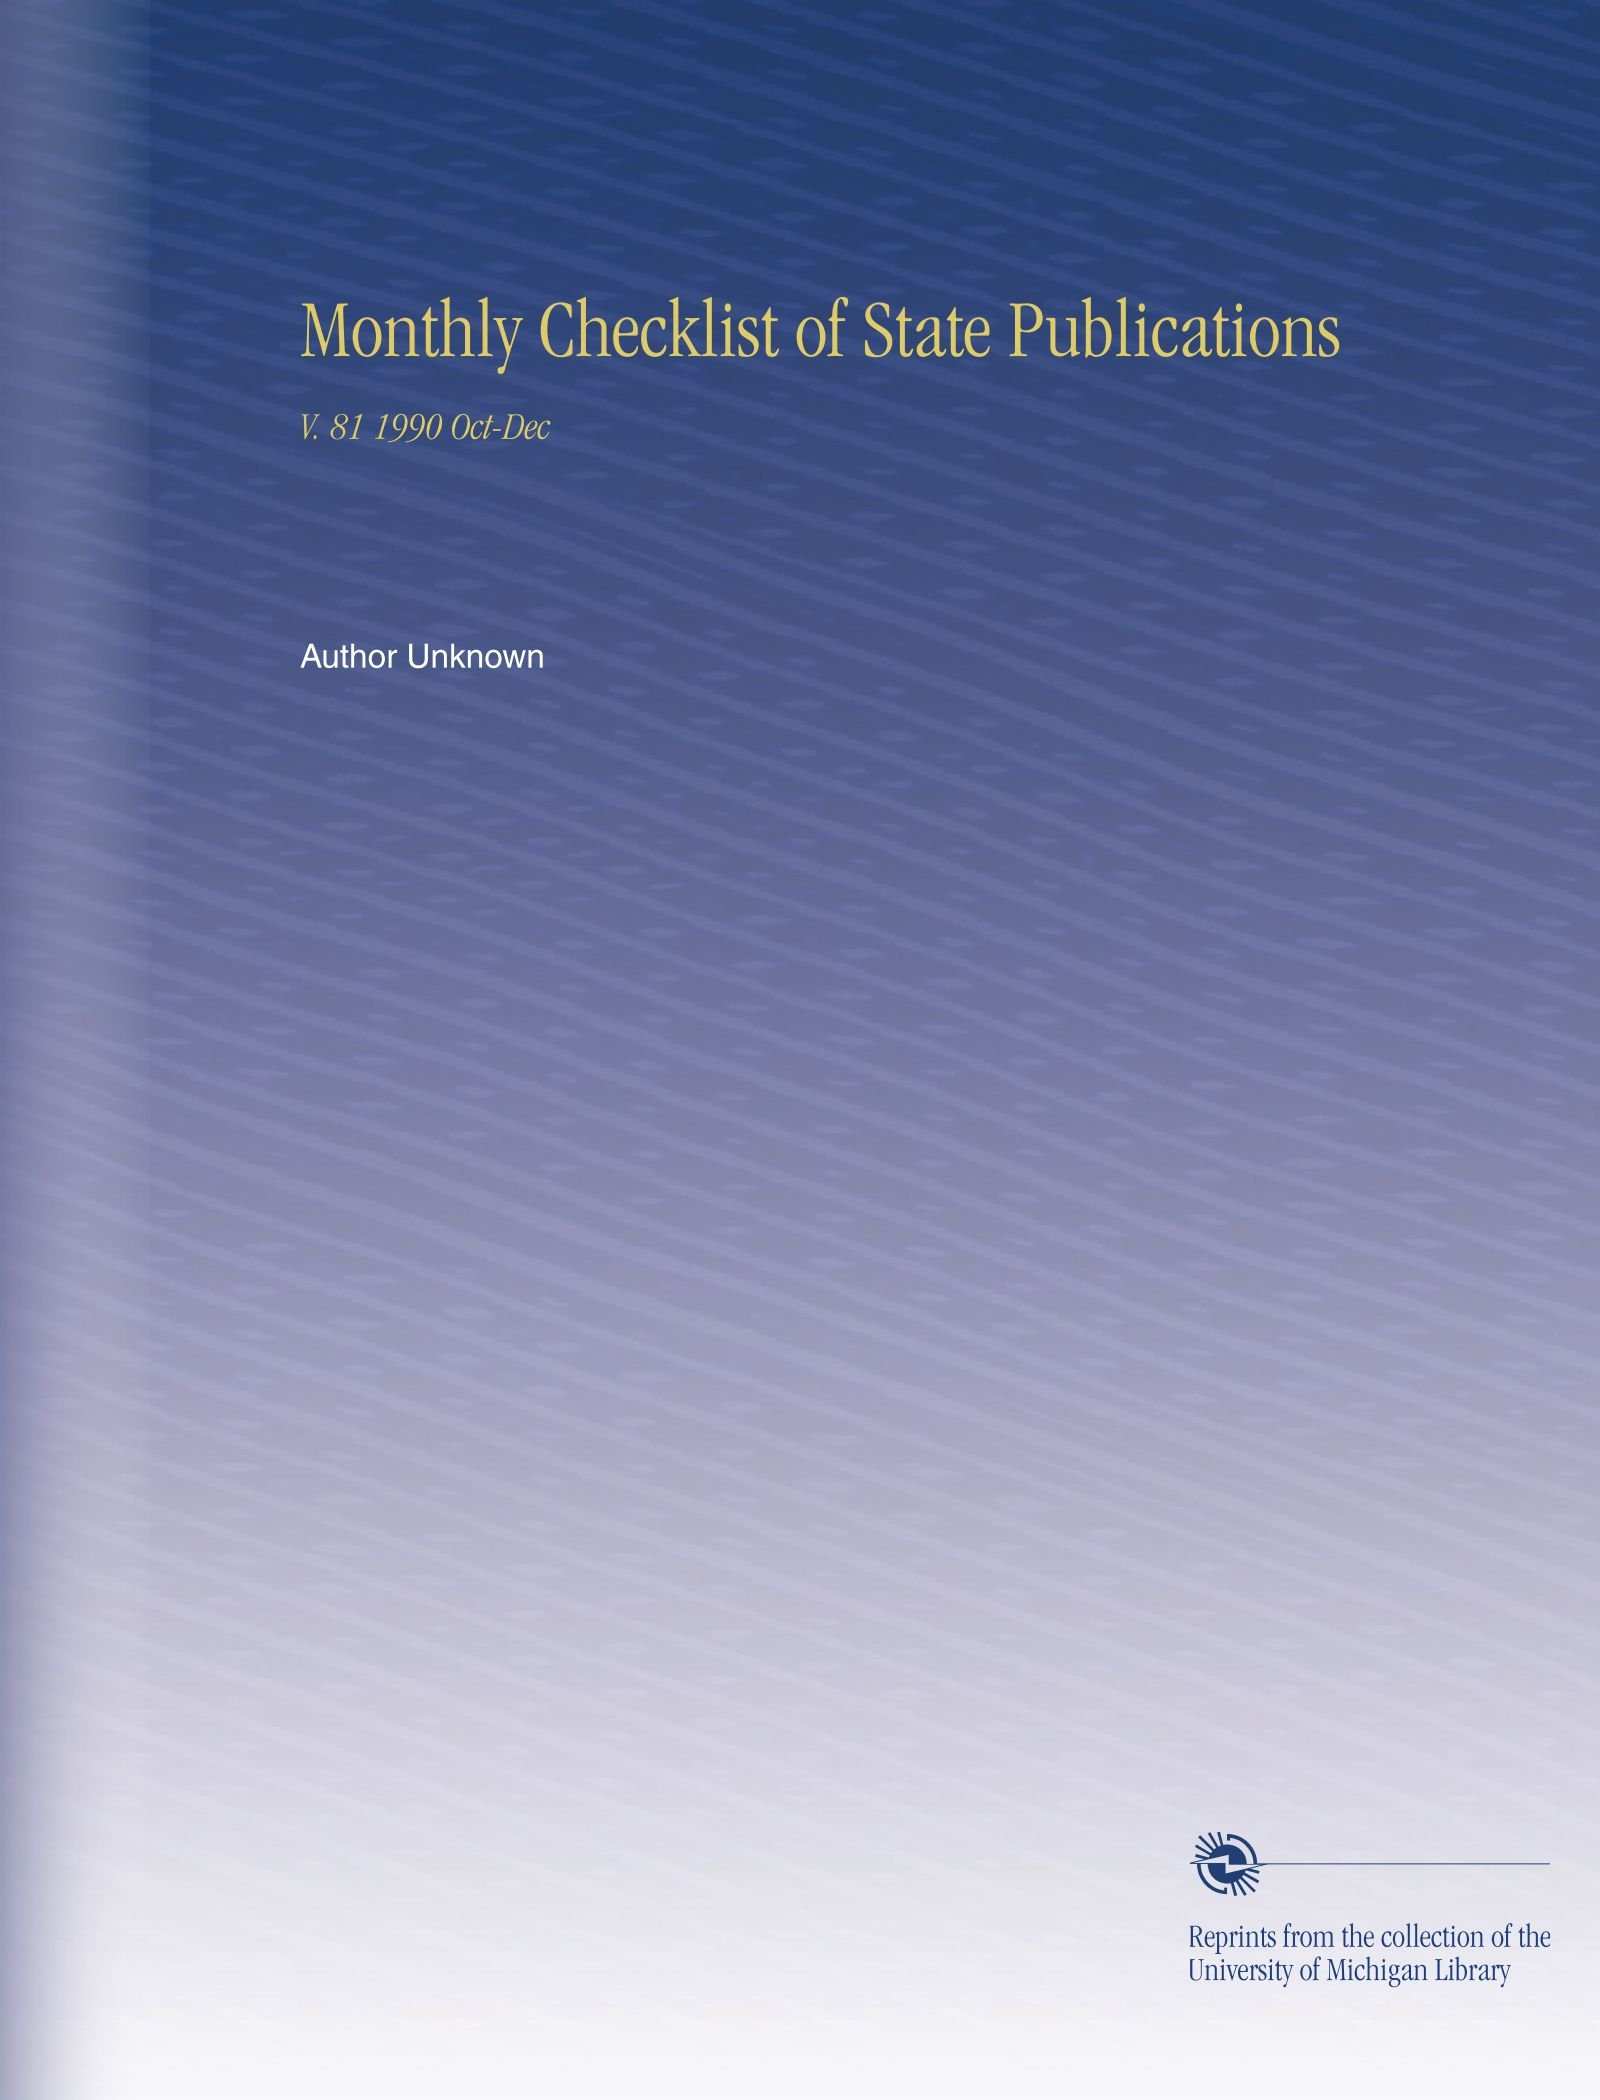 Monthly Checklist of State Publications: V. 81 1990 Oct-Dec pdf